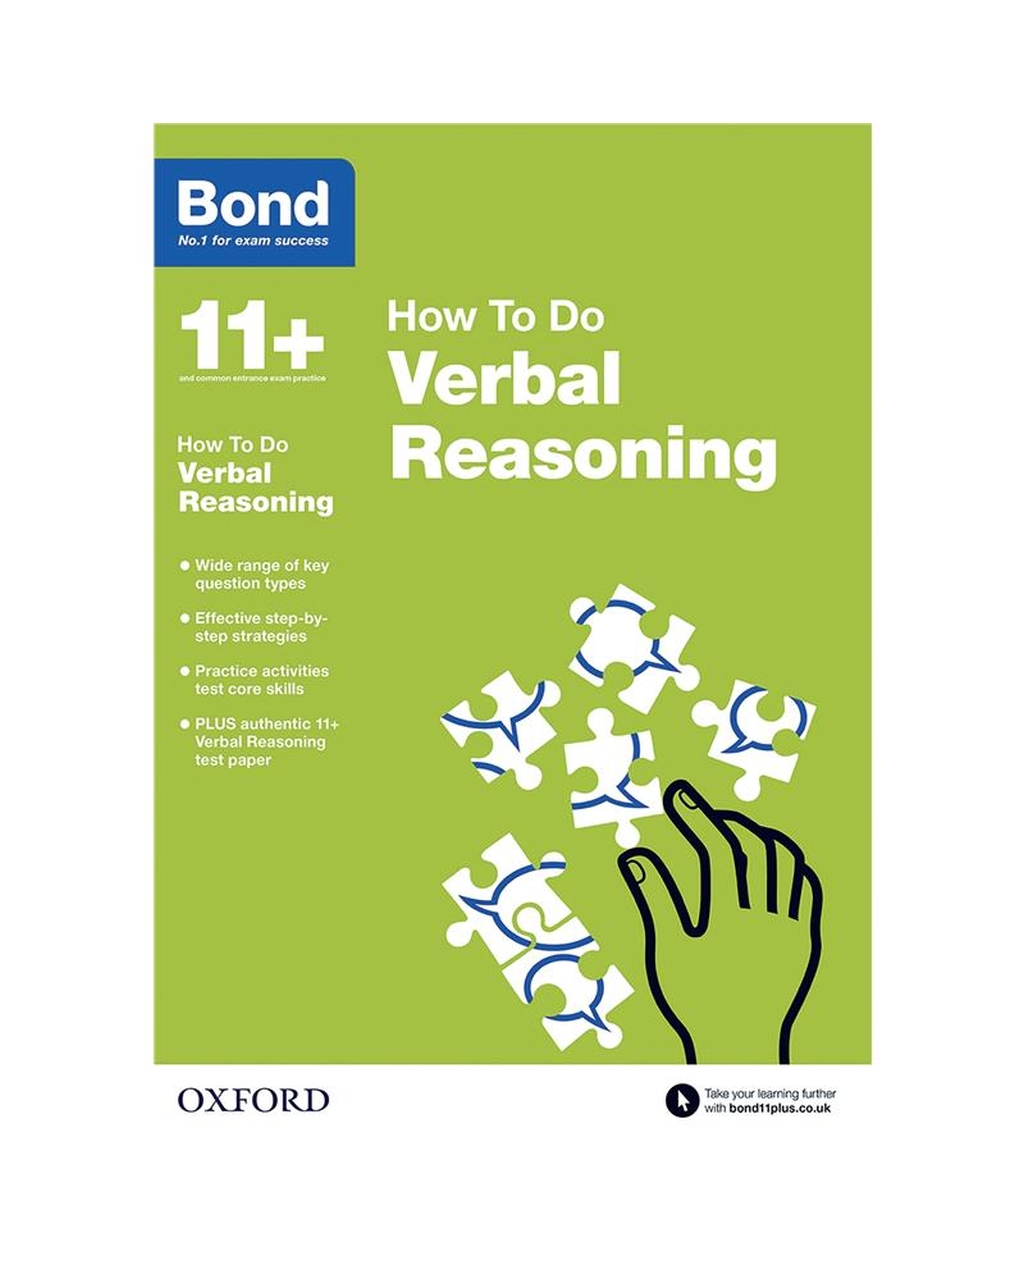 Bond: How To Do Verbal Reasoning 11+